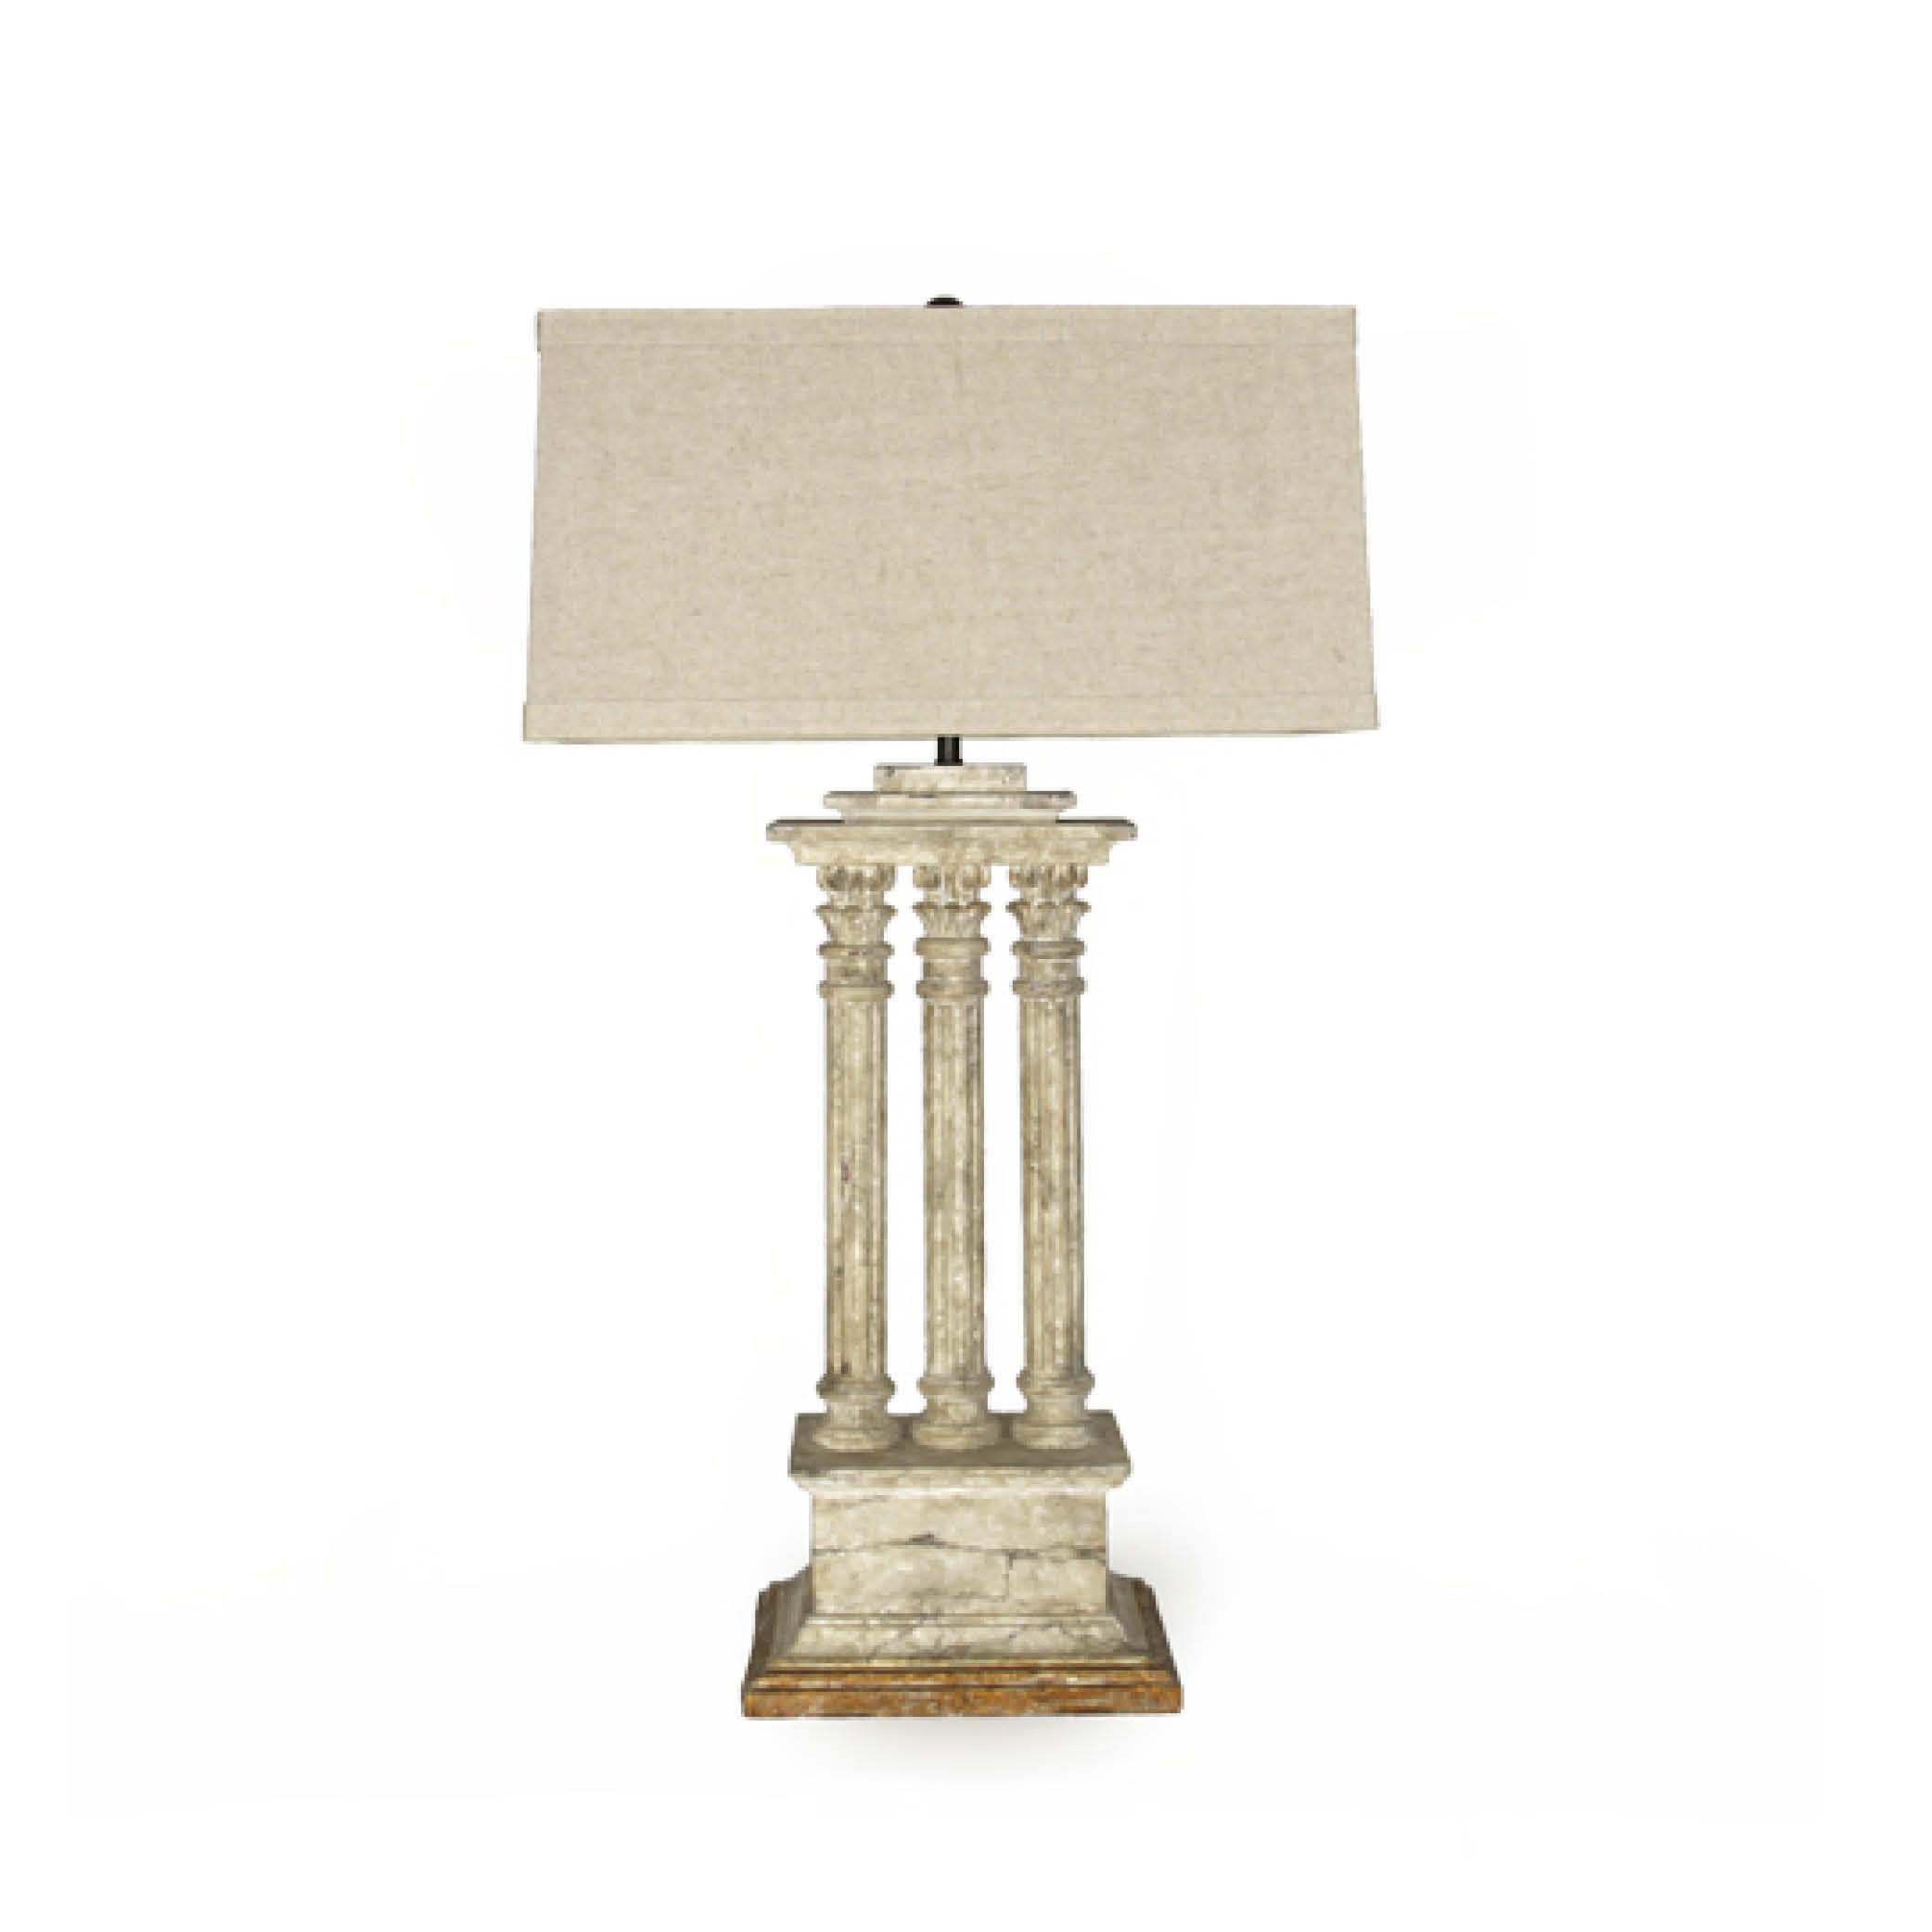 Tri Column Lamp  $512.00   Wants 1 Has 0 Needs 1